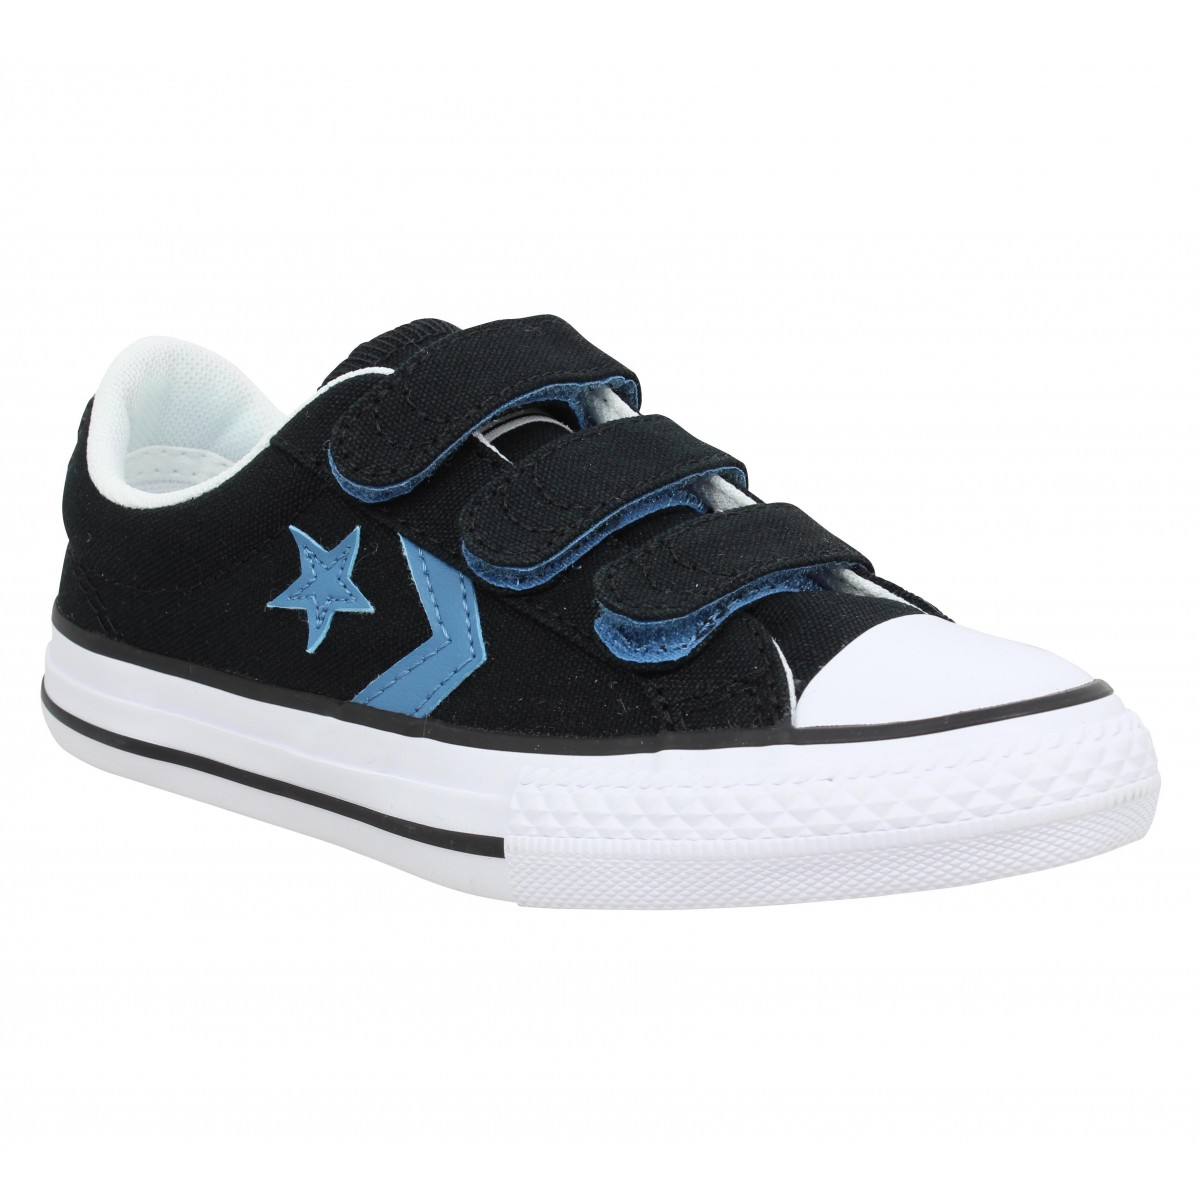 Baskets CONVERSE Star Player 3V toile Enfant Storm